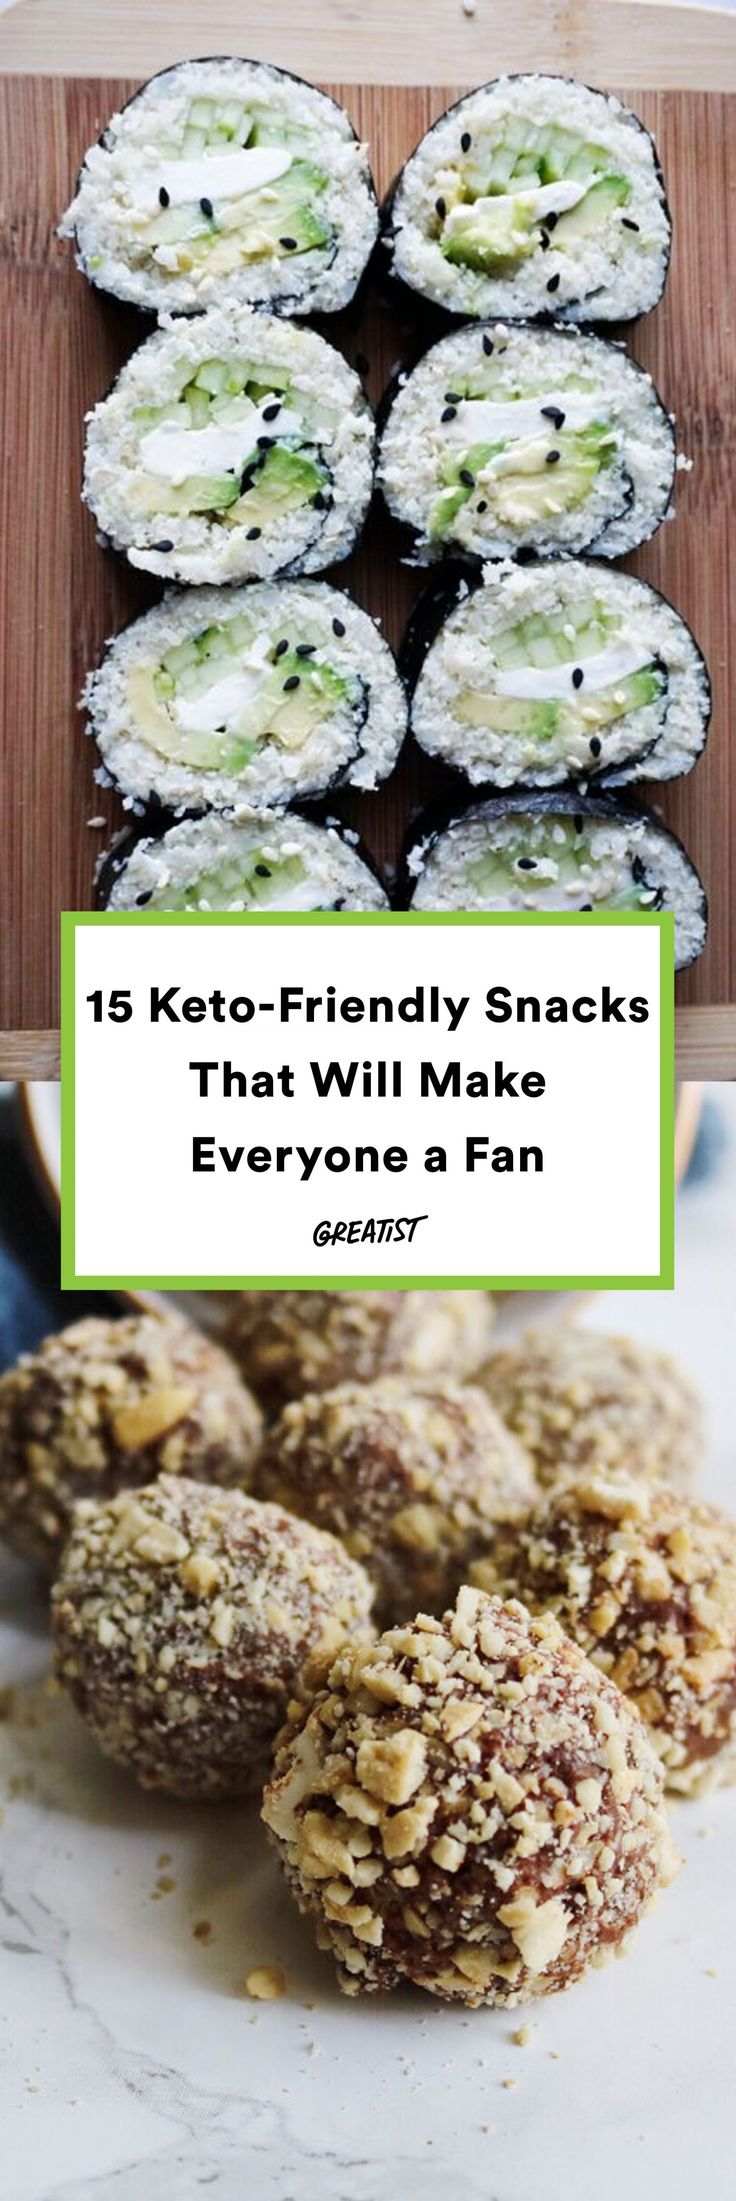 High in fats, low in carbs, and 100-percent cheese-friendly, it's no wonder keto is all the rage. And though cutting out carbs means kissing a few foods goodbye, there's still so much good stuff you can eat. The proof is in the (chia seed) pudding: It took us almost no time to find 15 ridiculously delicious keto-friendly snacks that made us want to convert on the spot.